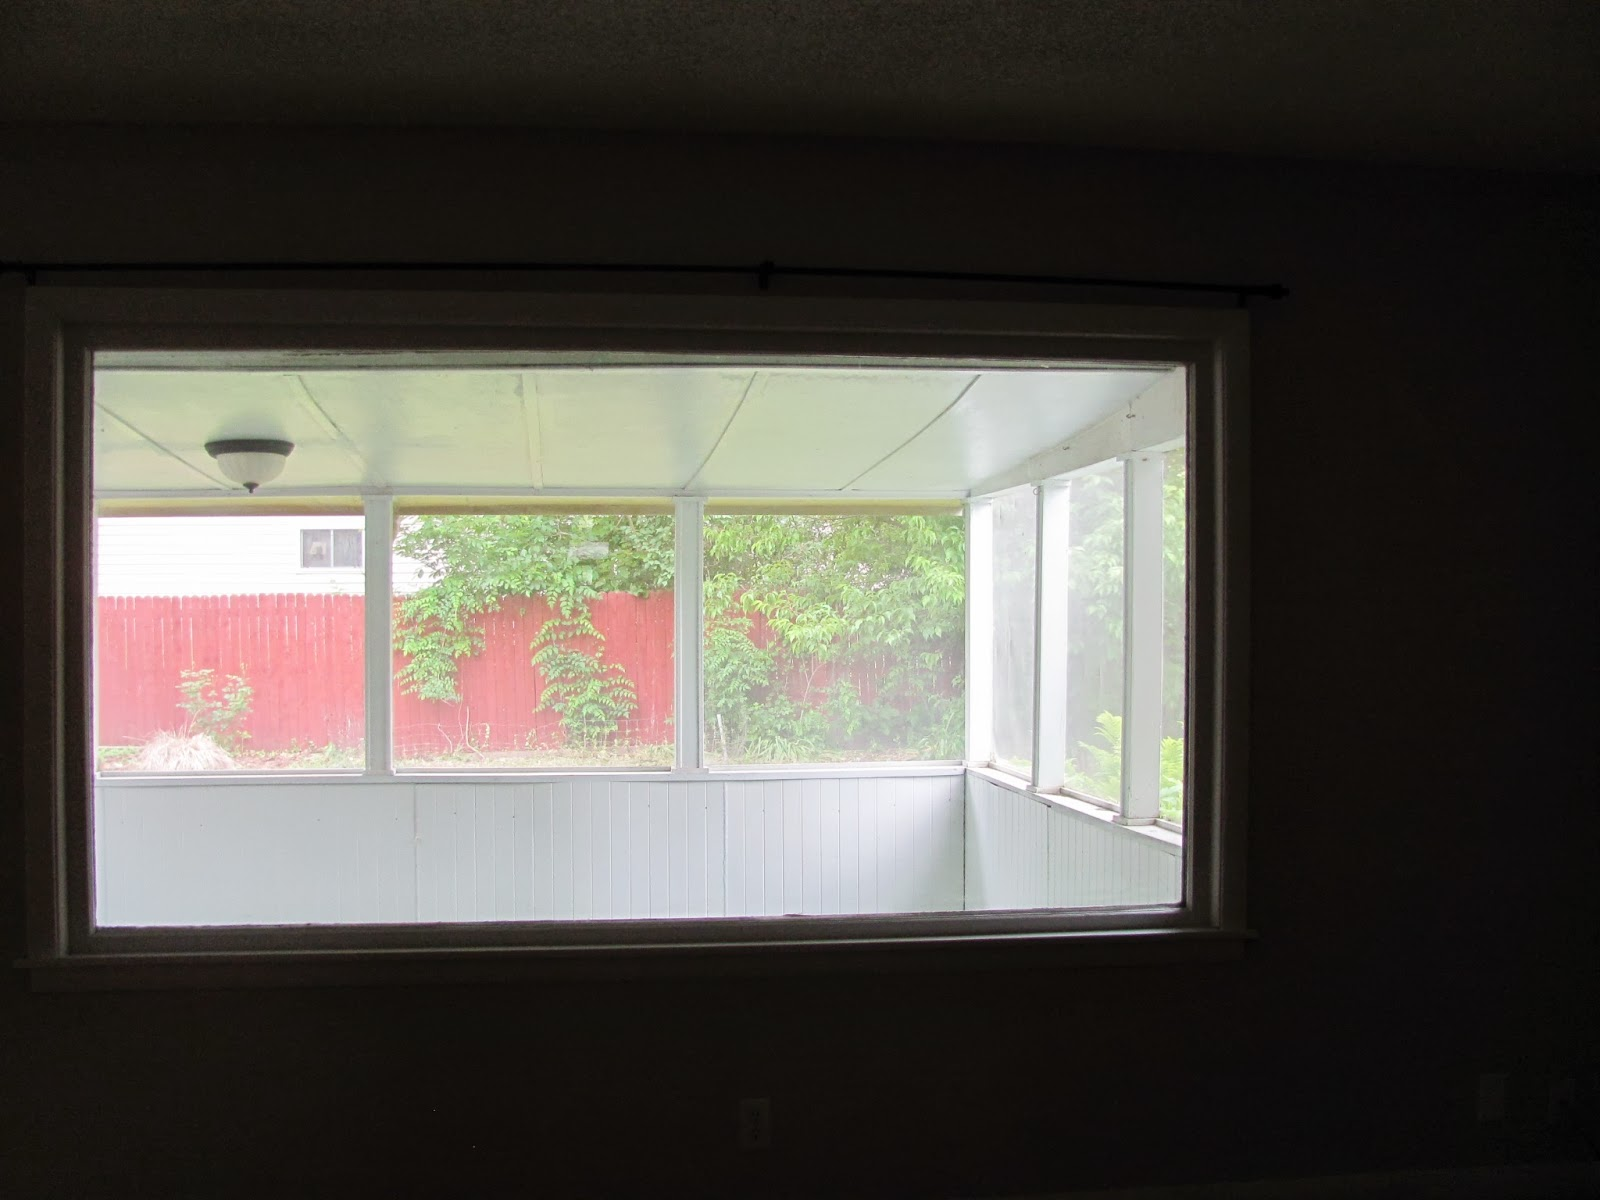 The screen porch is seen through the large window in the living room